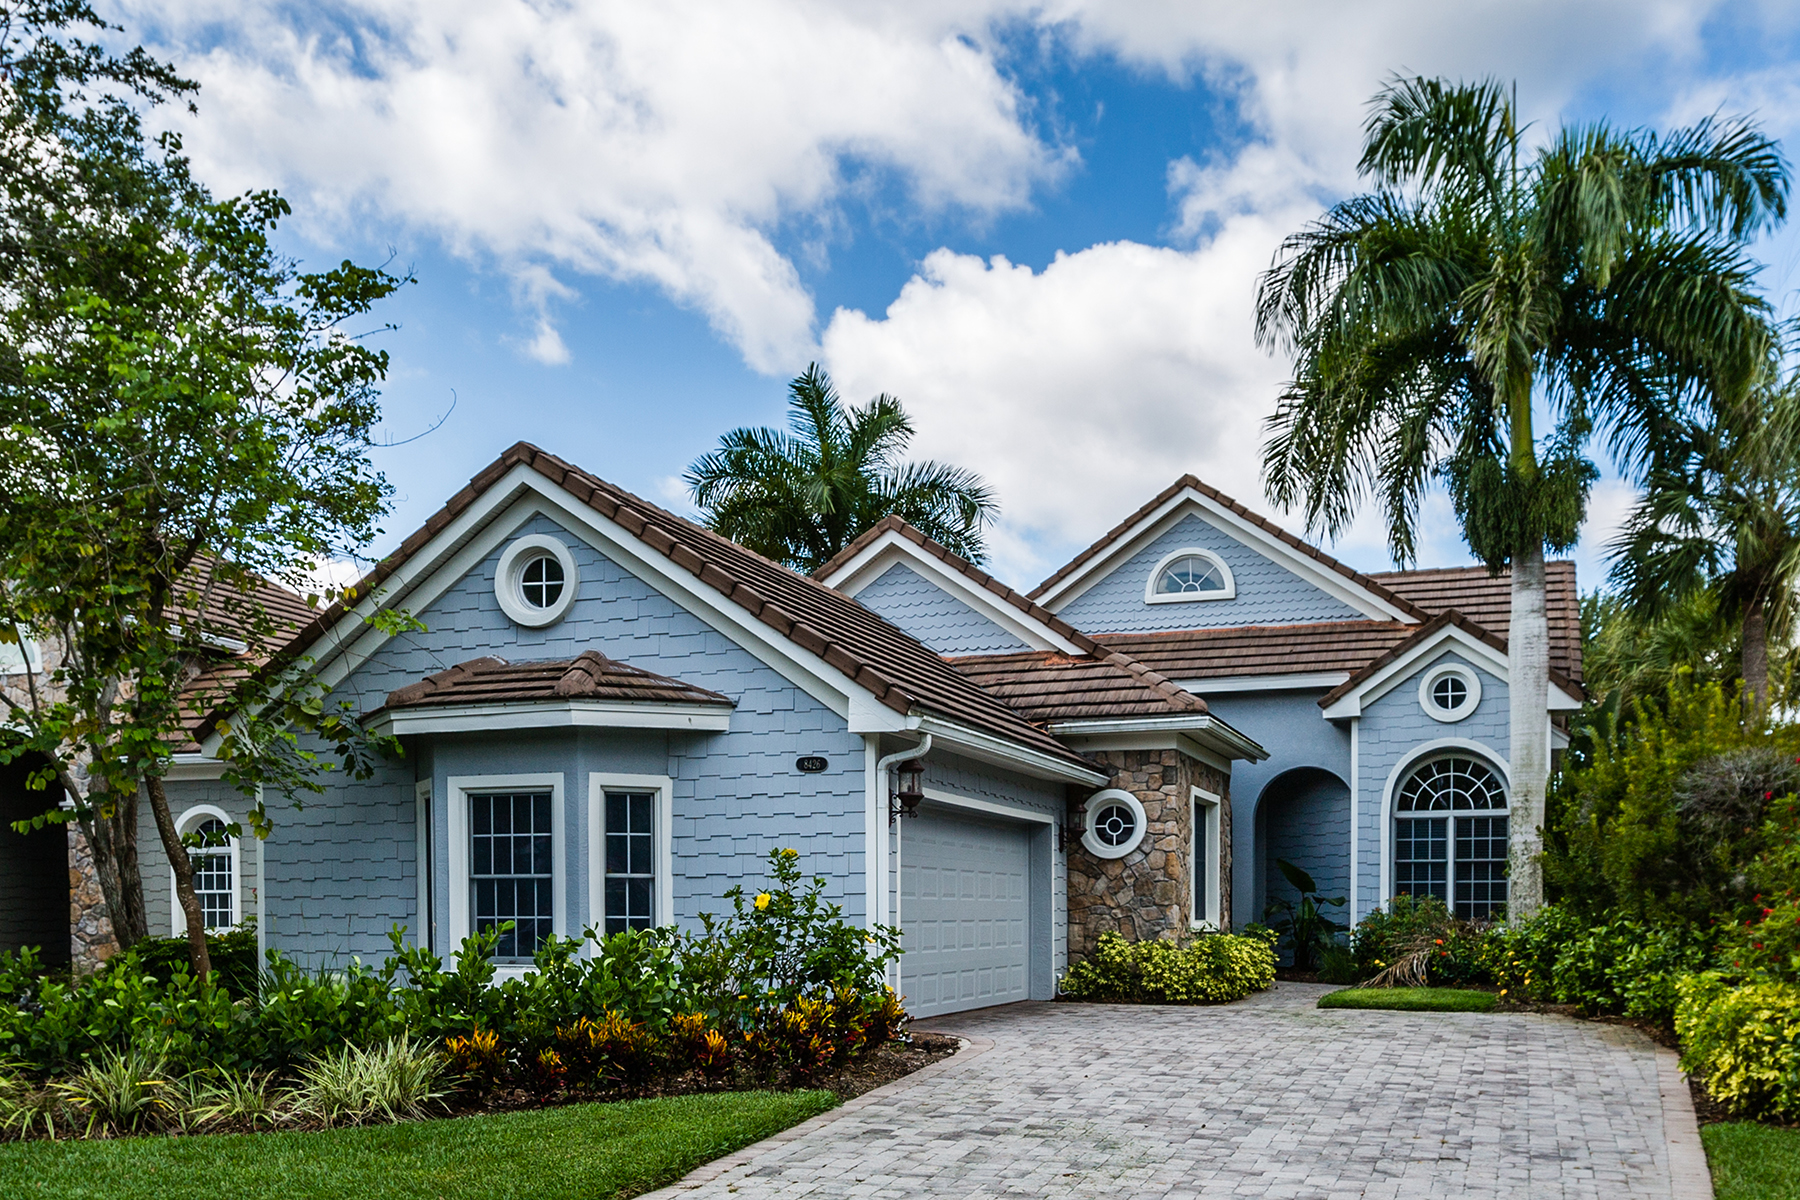 Single Family Home for Sale at FIDDLERS CREEK 8426 Mallards Way, Naples, Florida 34114 United States